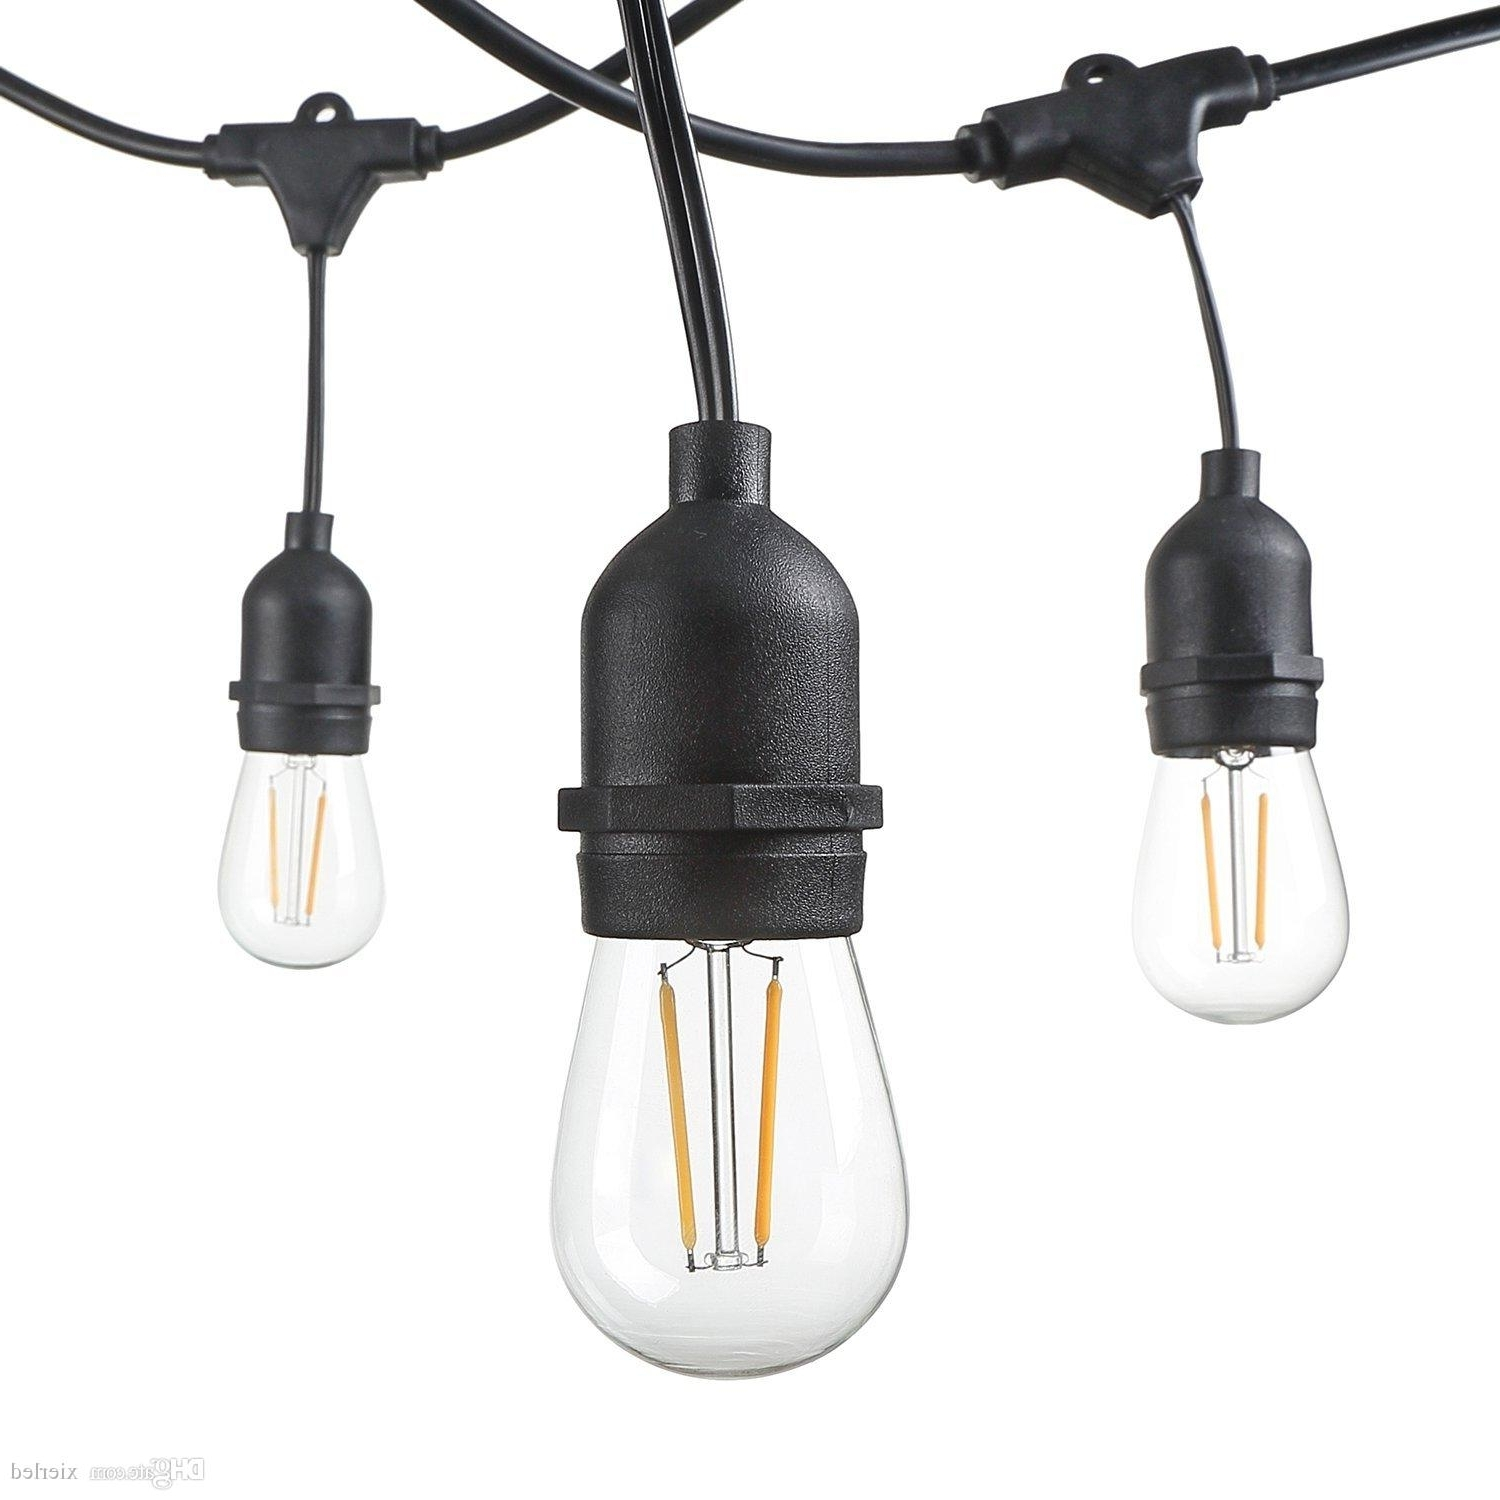 Newest 48 Foot Weatherproof Outdoor String Lights S14 Led Filament Bulbs Intended For Waterproof Outdoor Lanterns (View 8 of 20)